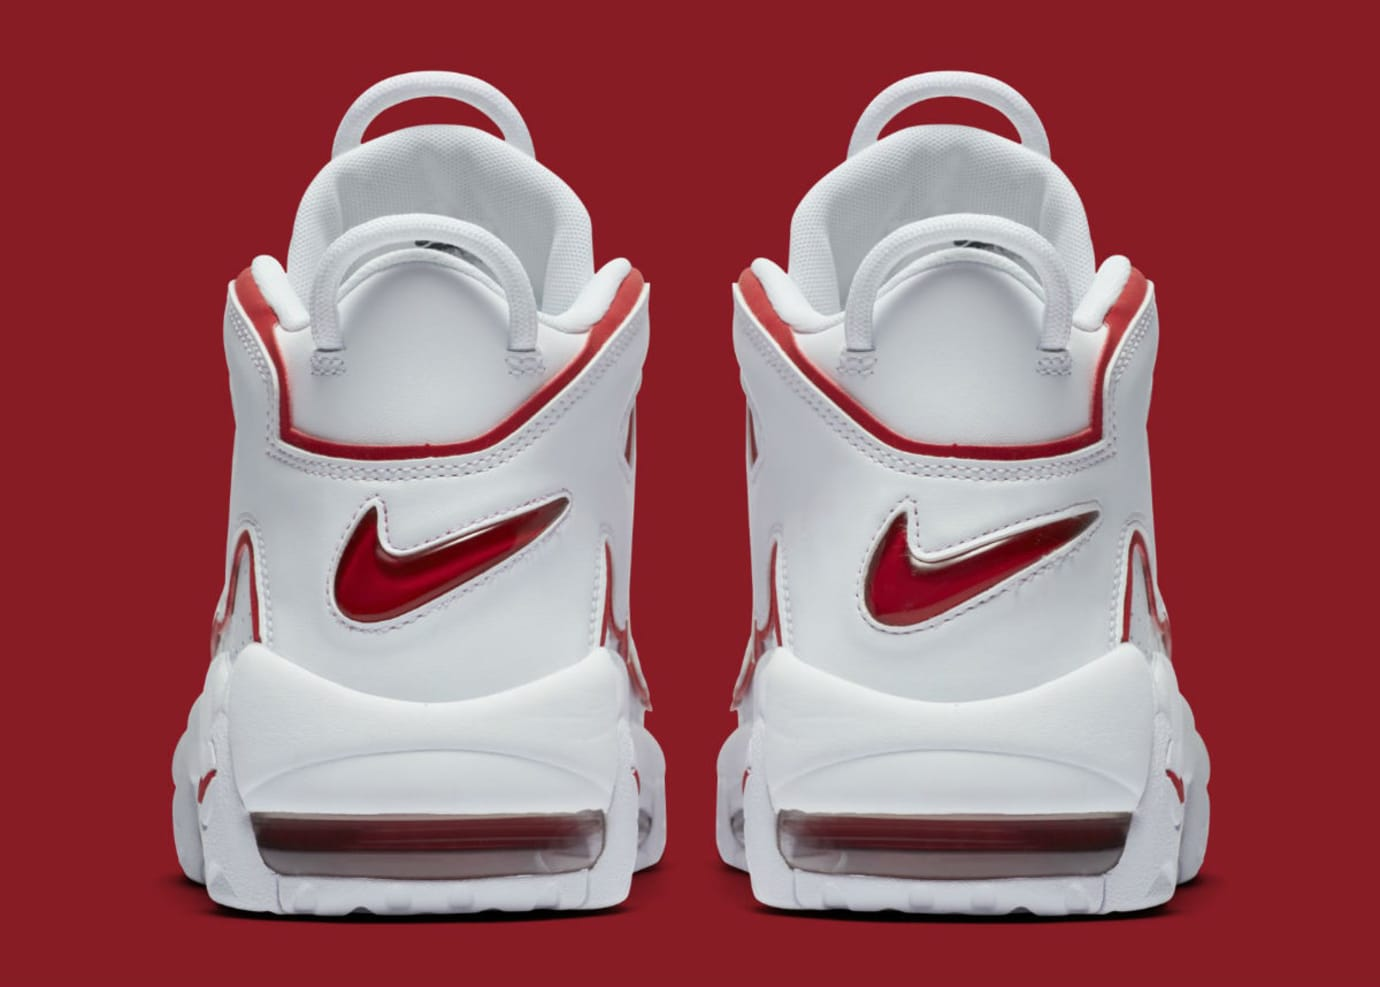 Nike Air More Uptempo Varsity Red Release Date 921948-102 Heel